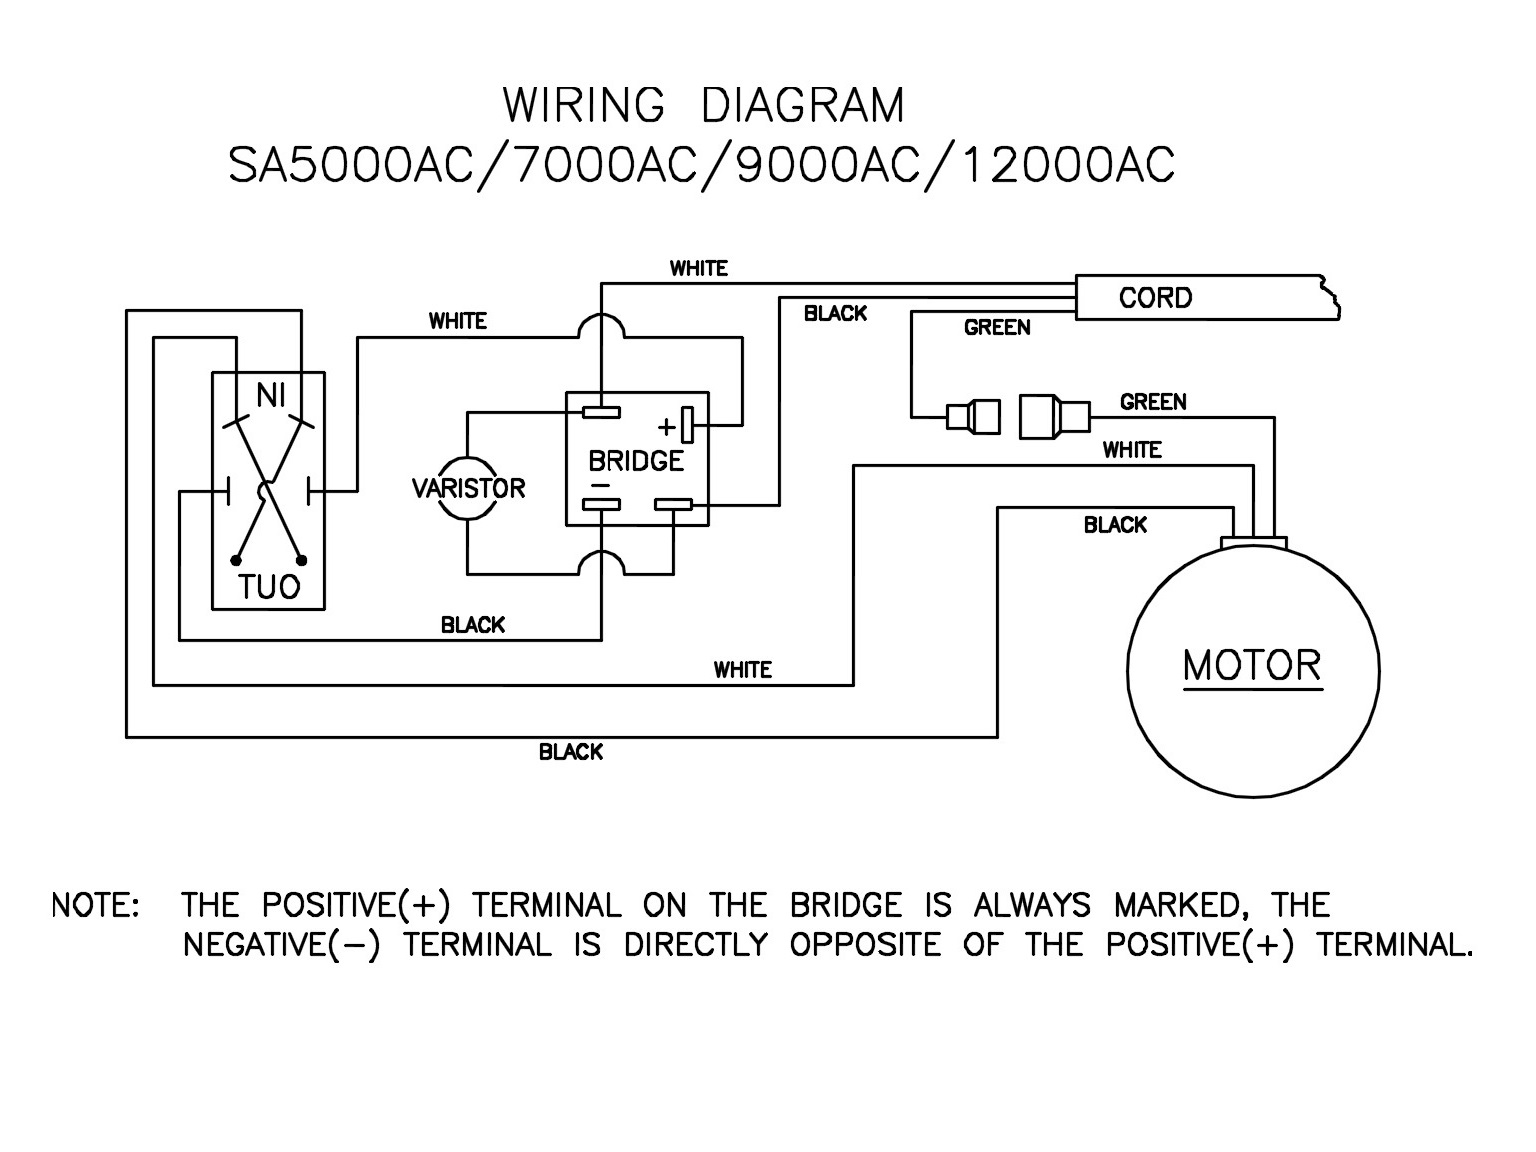 hight resolution of hight resolution of when installing new bridge make absolutely certain to connect it according to wiring